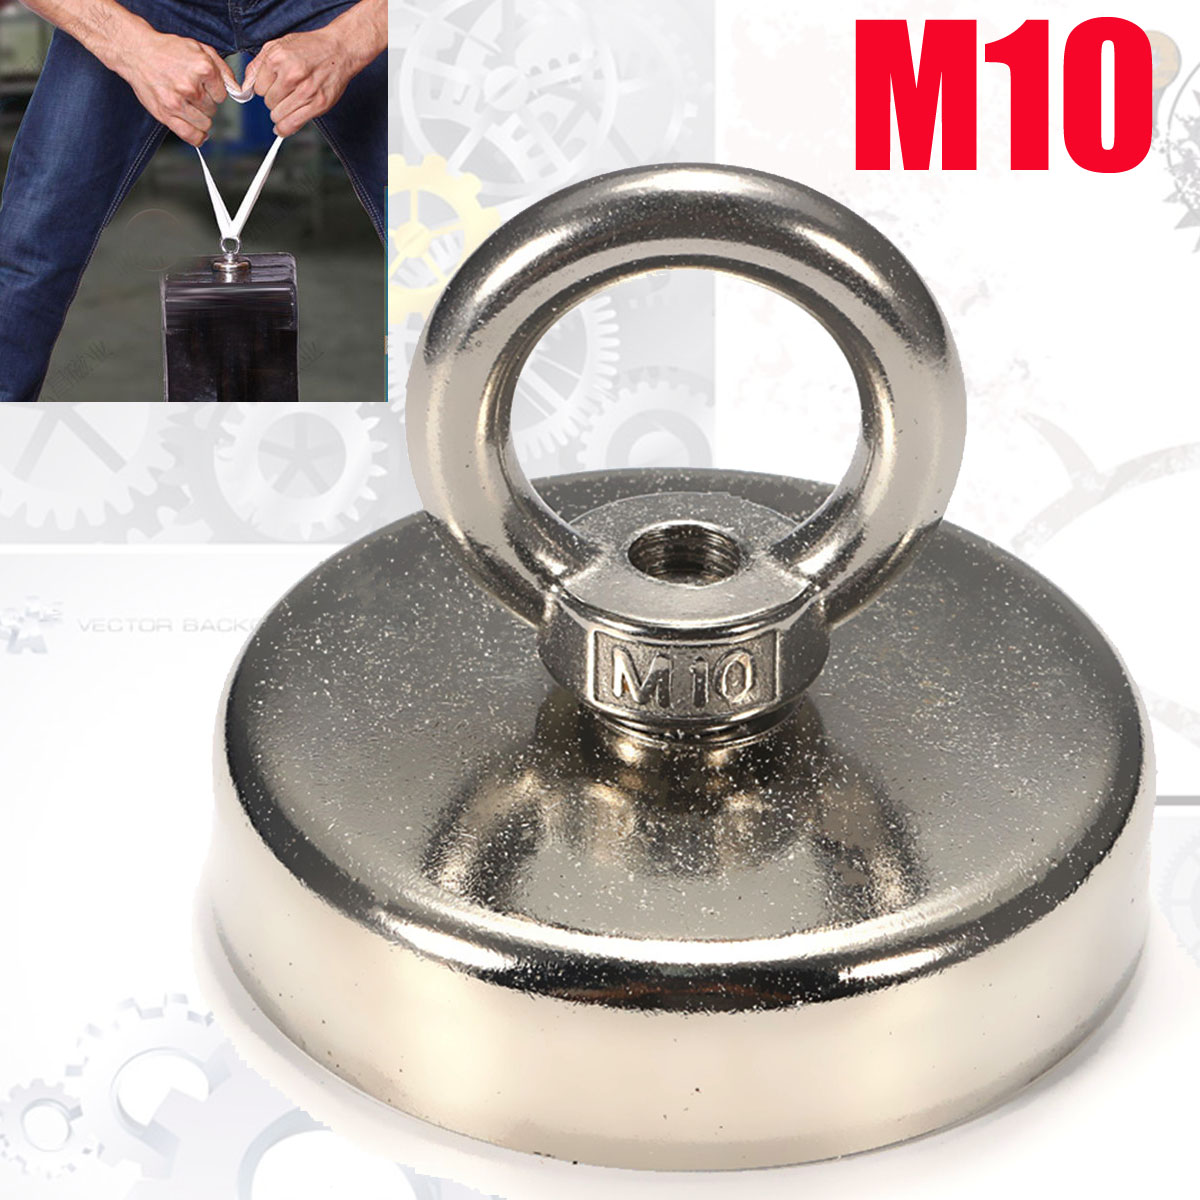 75mmx63mm 162kg Round Neodymium Fishing Magnet with Countersunk Hole and Eyebolt Recovery Magnet Metal Detector suleve 75x80mm neodymium recovery magnet metal detector eyebolt circular ring magnet 165kg